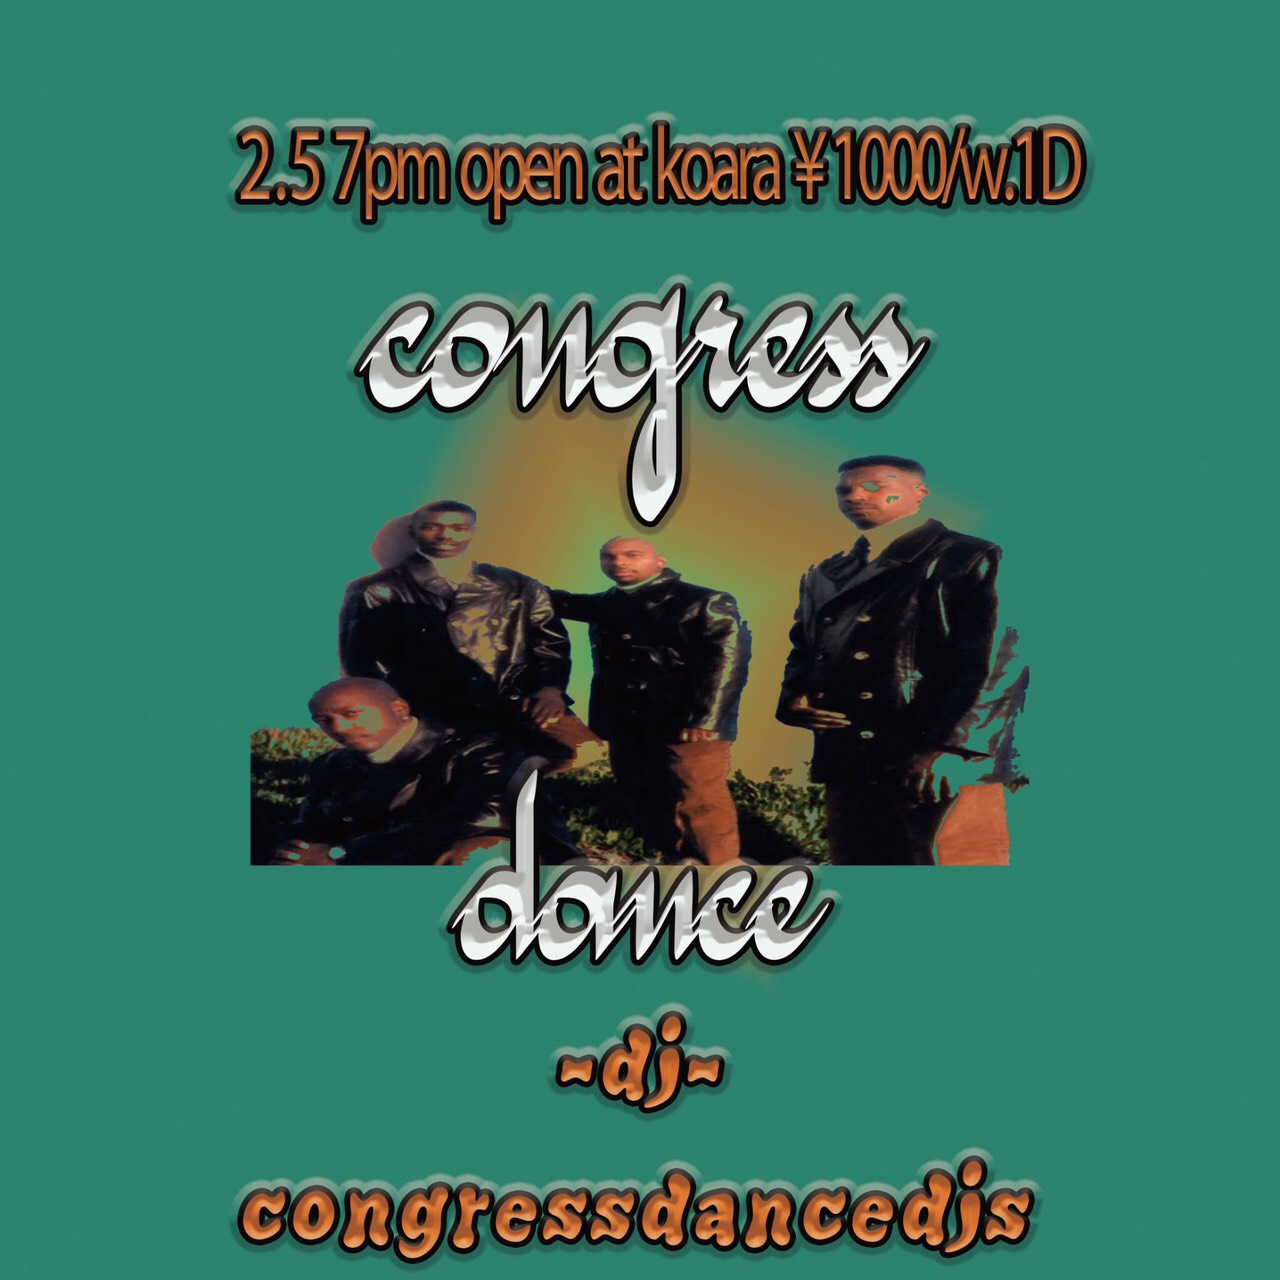 congress dance vol.11